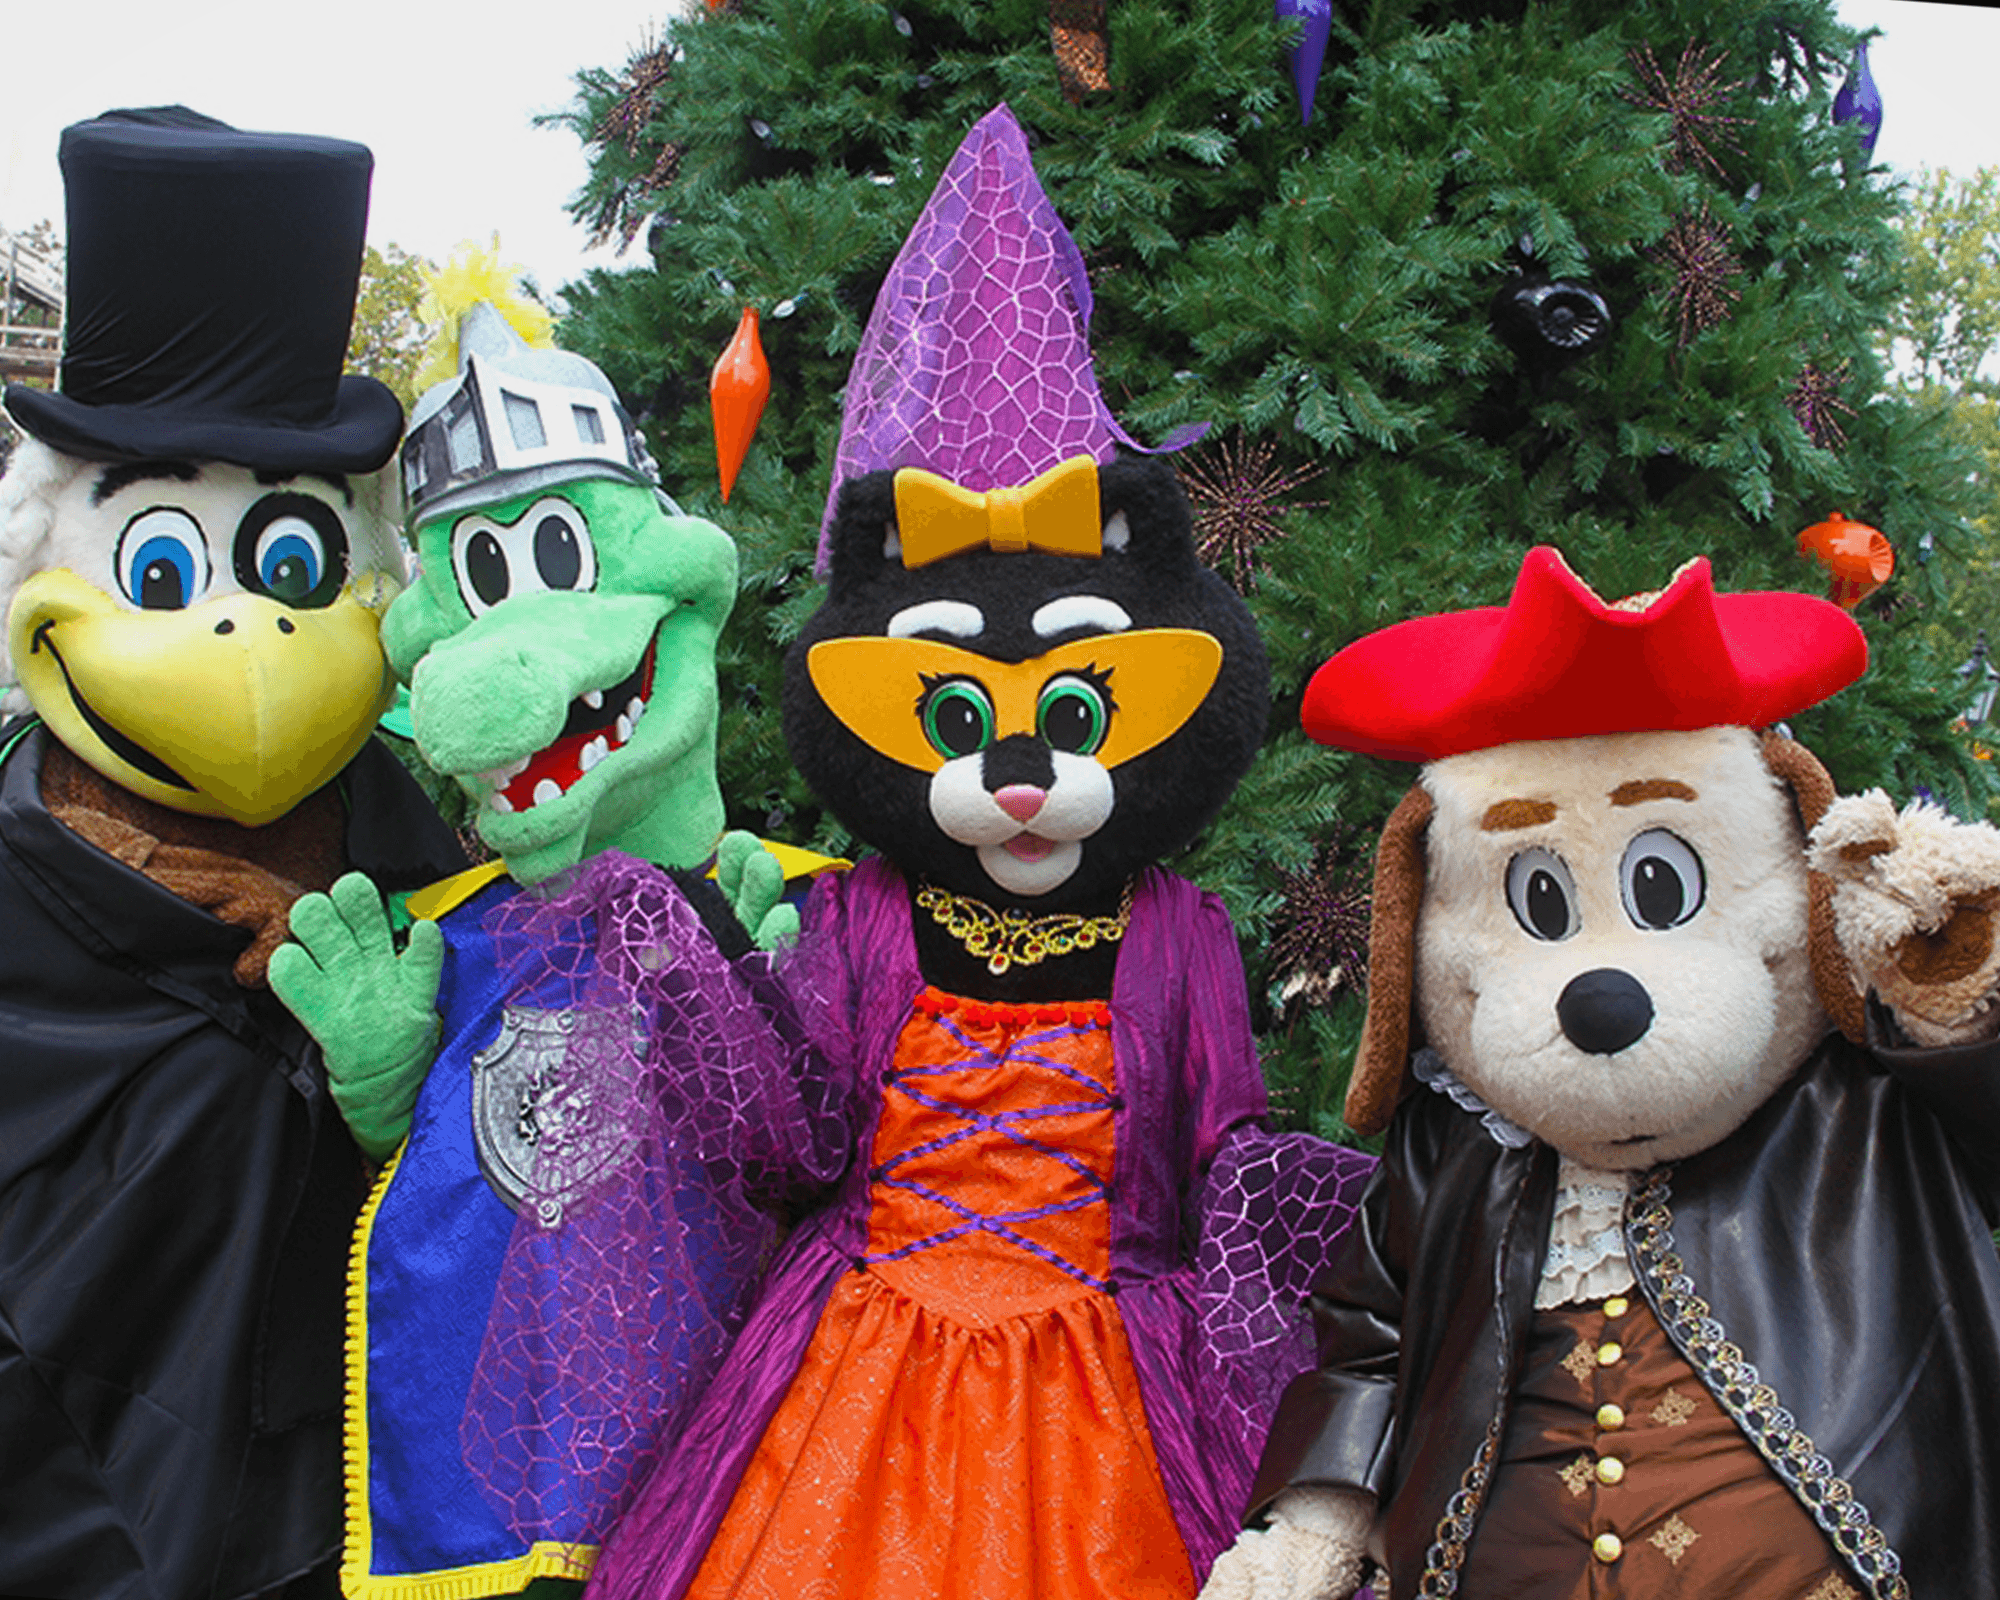 Holidog & Friends during Happy Halloween Weekends | Holiday World & Splashin' Safari